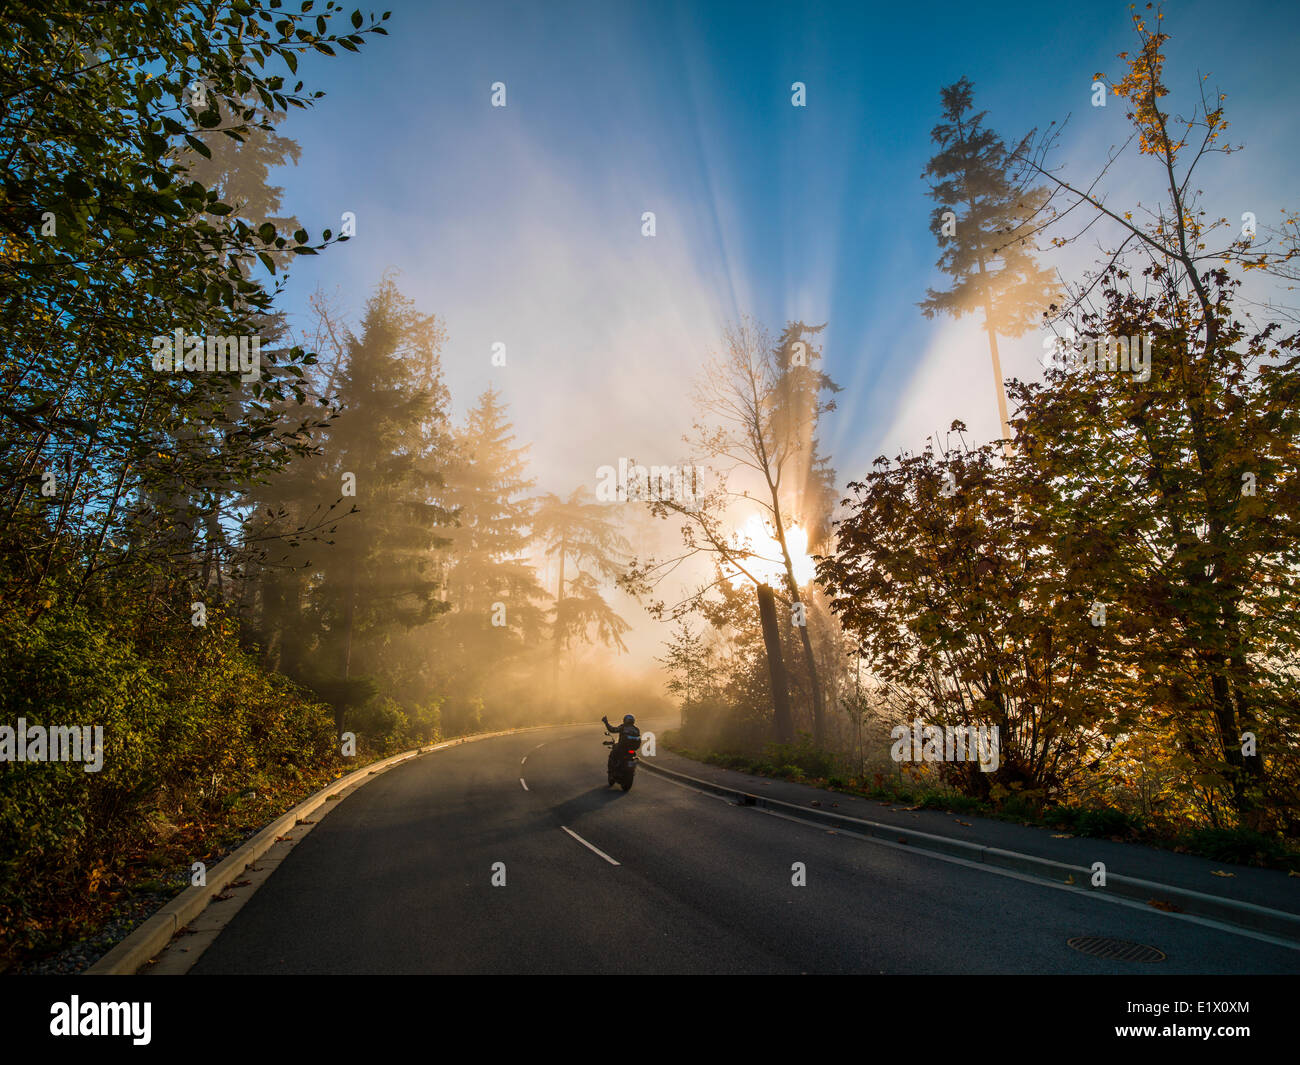 Motorcycle in fog. Stanley Park Drive. - Stock Image